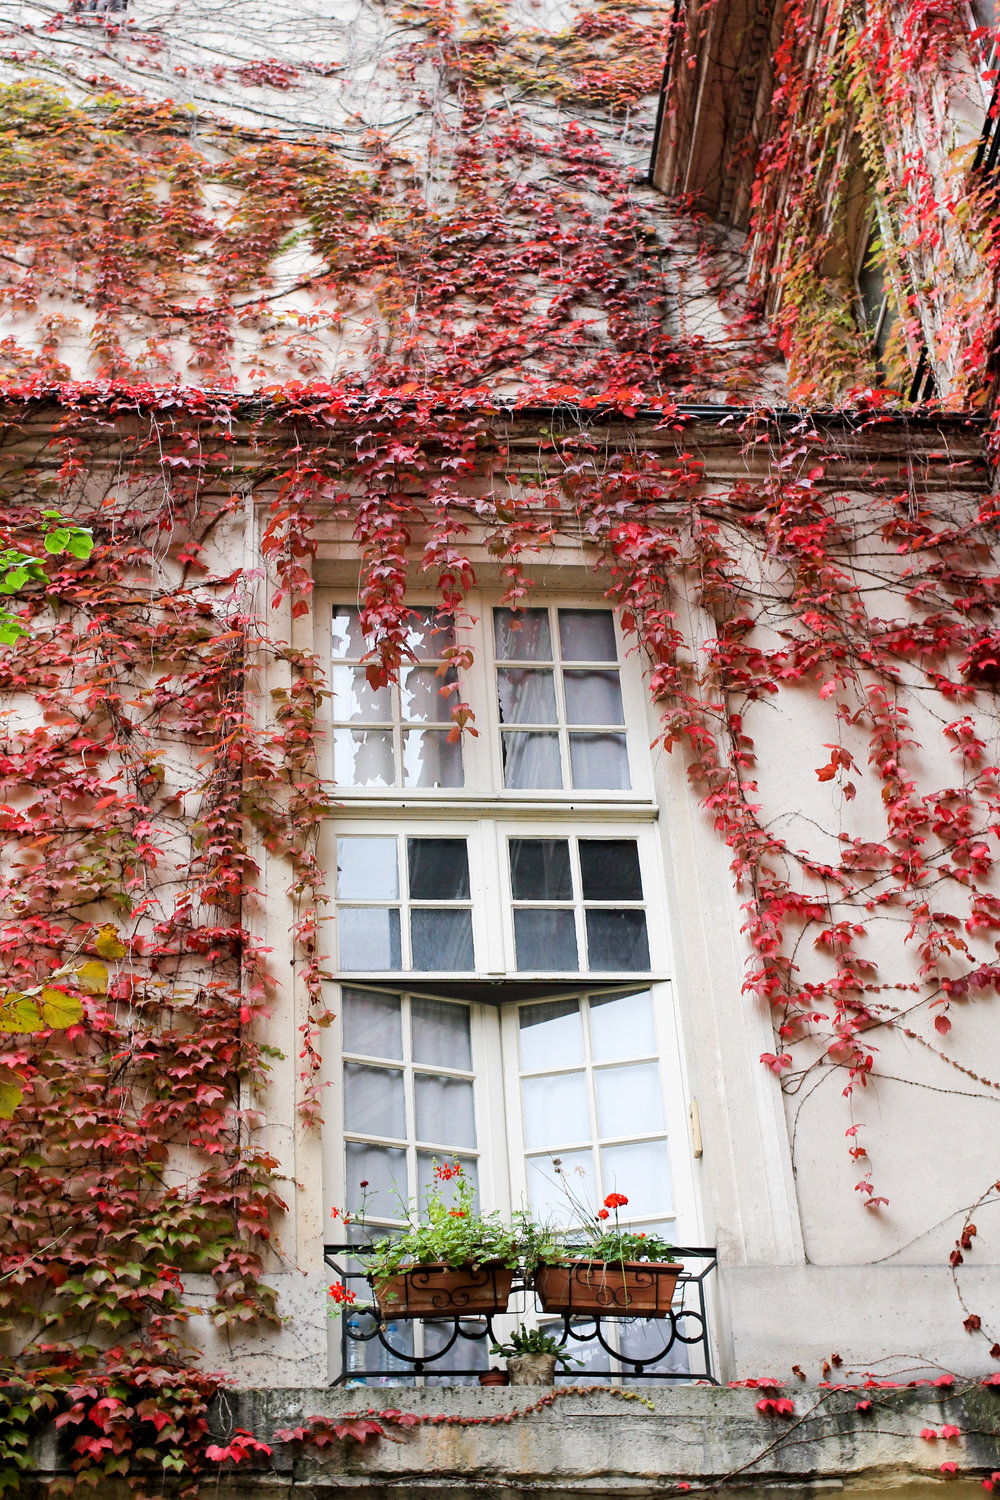 fall in paris, france by rebecca plotnick